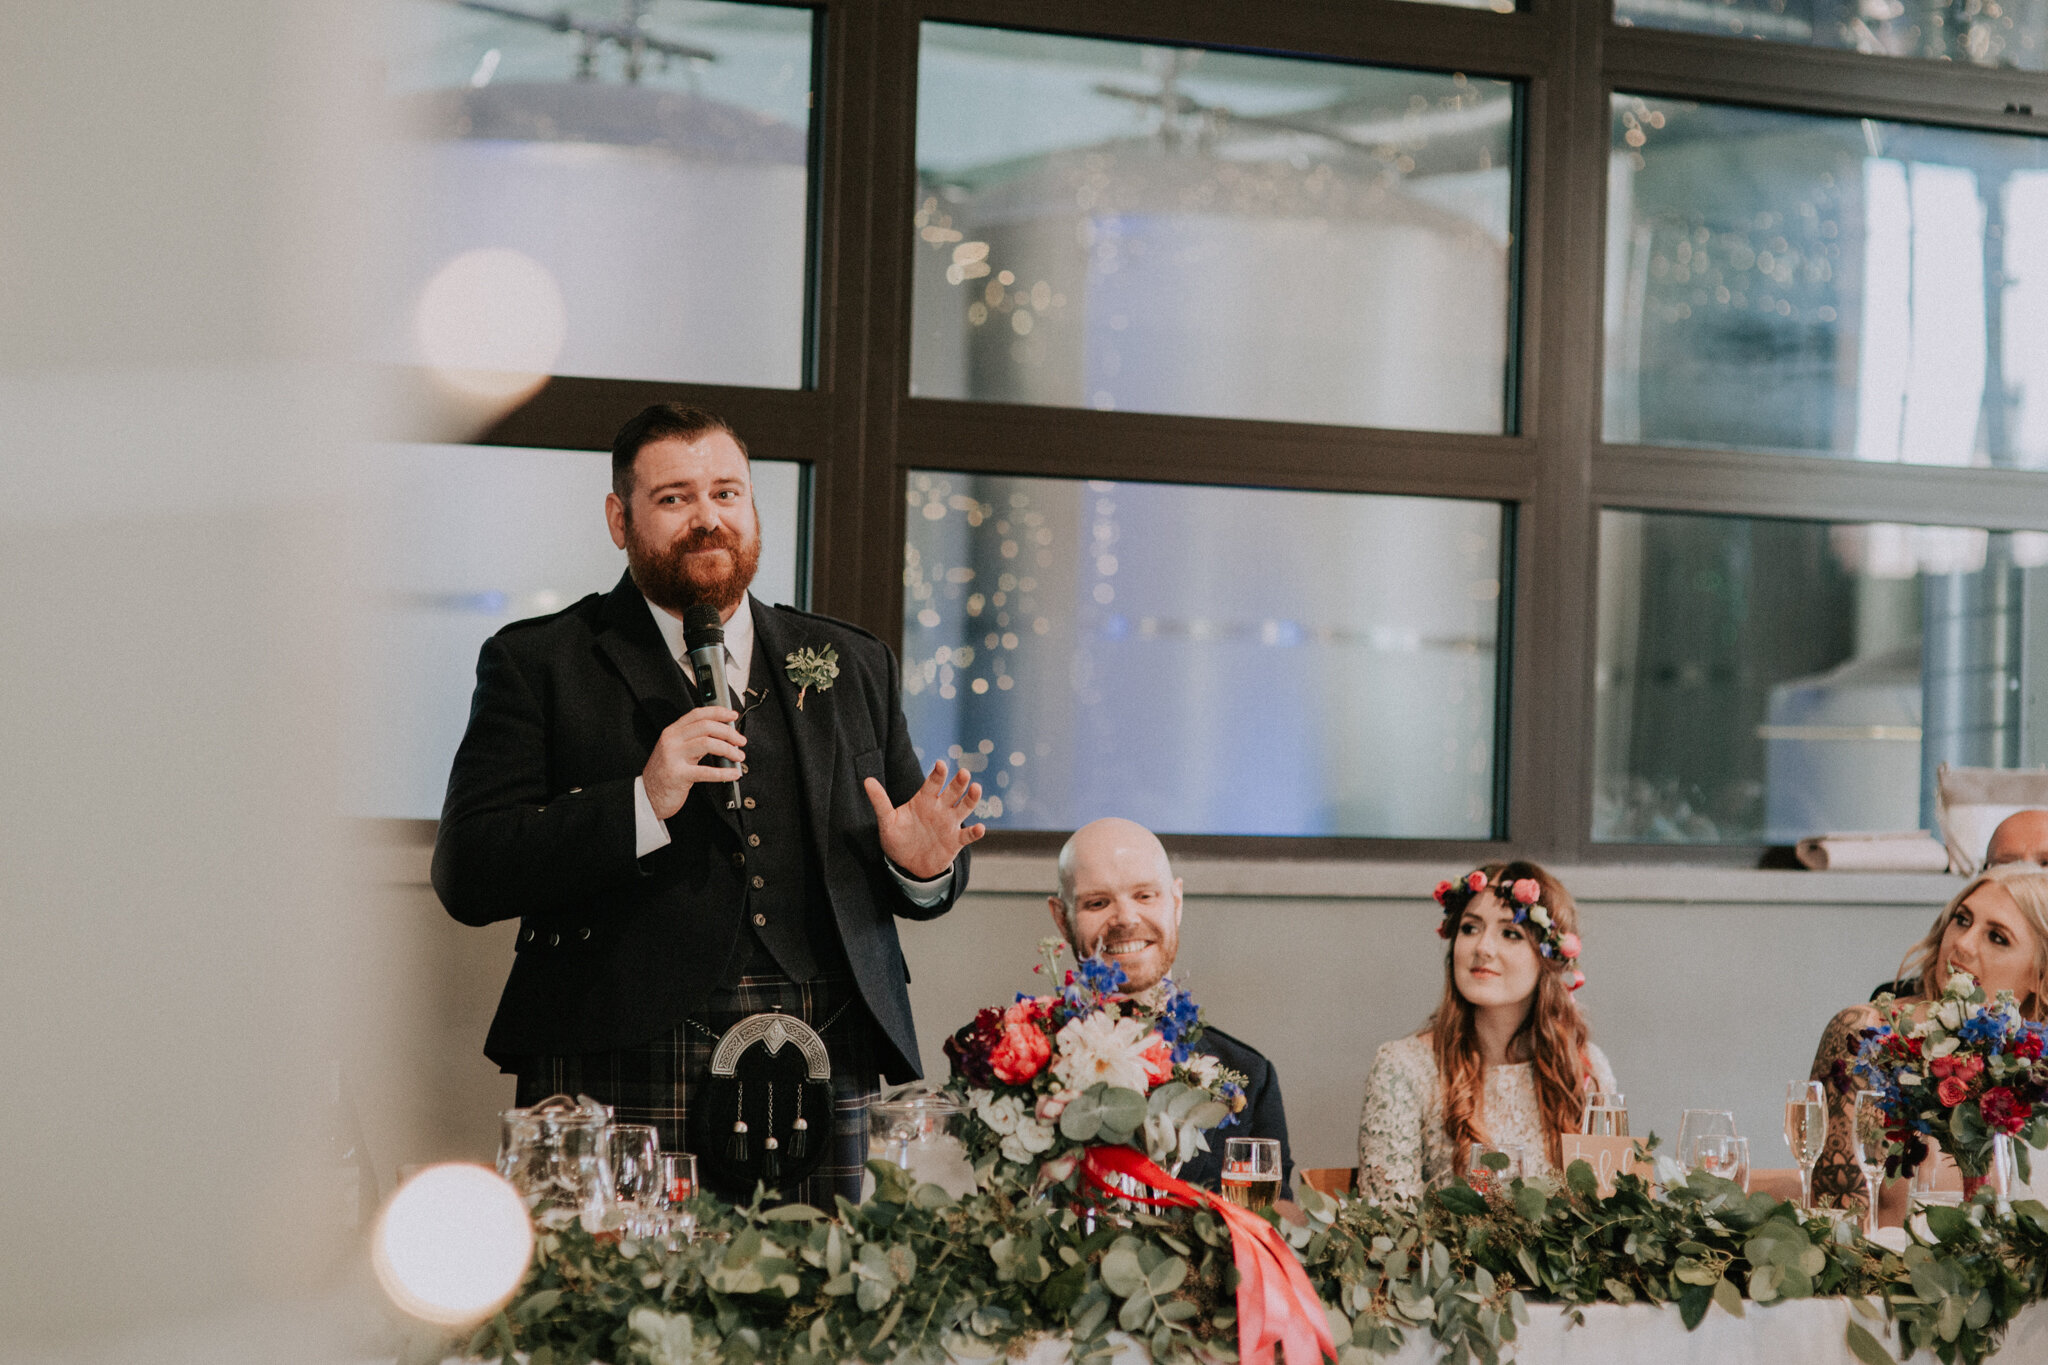 The best man is giving a speech at West on the Green wedding venue in Glasgow